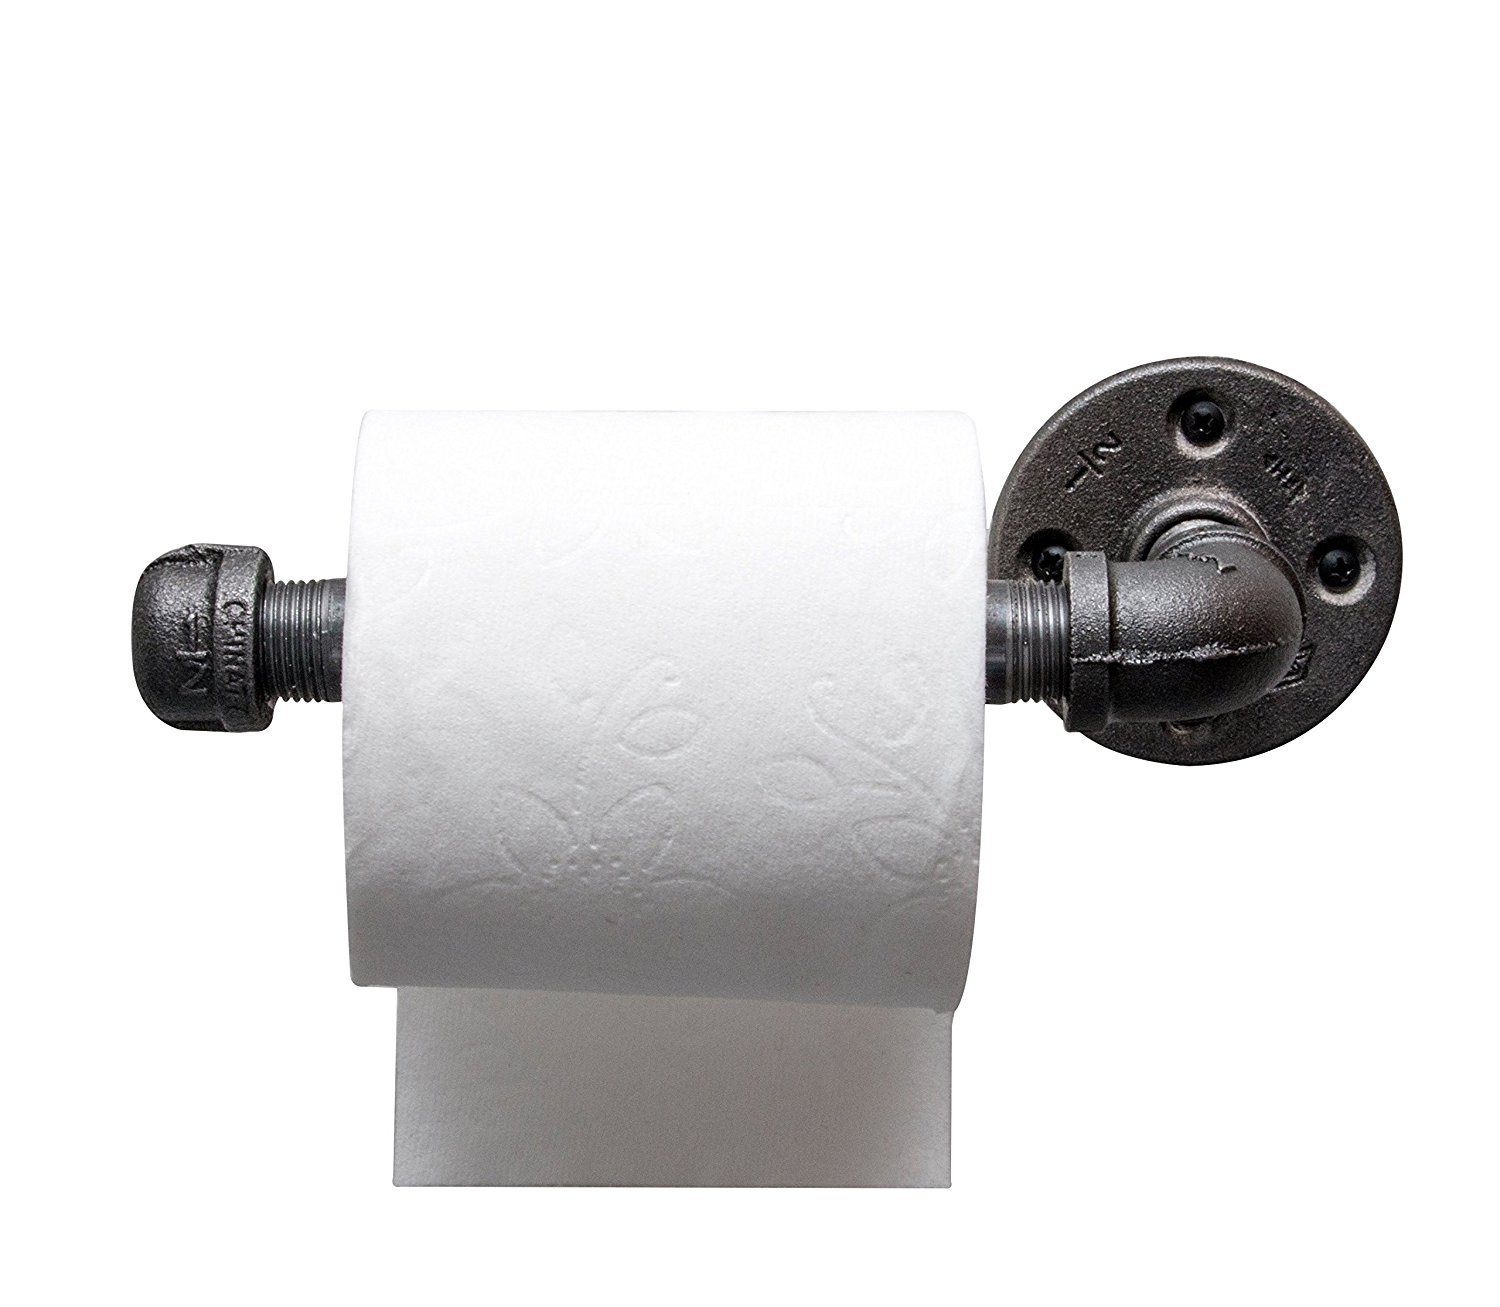 DIY CARTEL Industrial Pipe Toilet Paper Tissue Holder - Black Iron - Commercial/Heavy Duty - Style : Modern, Minimalist, Rustic, Steampunk, Farmhouse Industrial Furniture (1 roll Holder)